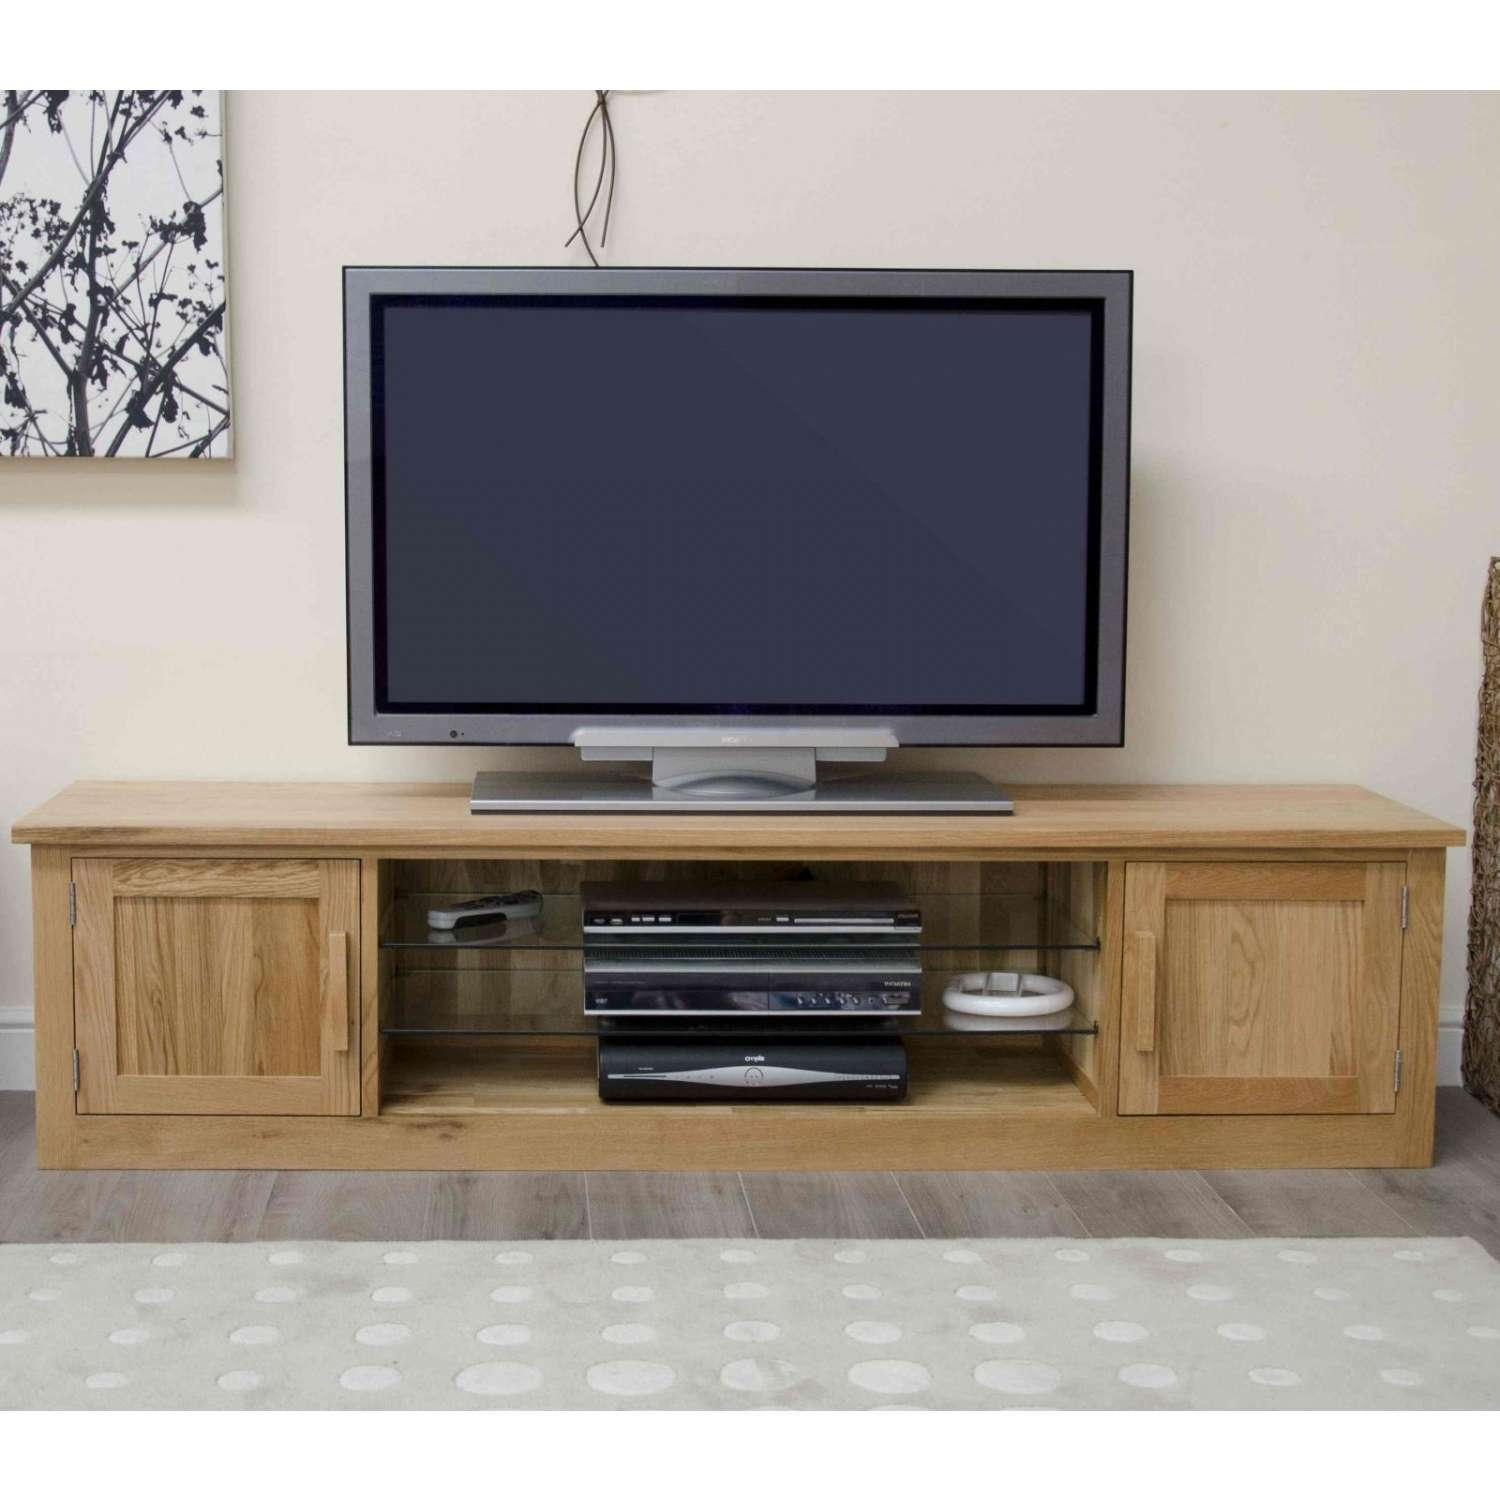 Arden Solid Oak Living Room Furniture Large Widescreen Tv Cabinet Inside Rustic Wood Tv Cabinets (View 13 of 20)